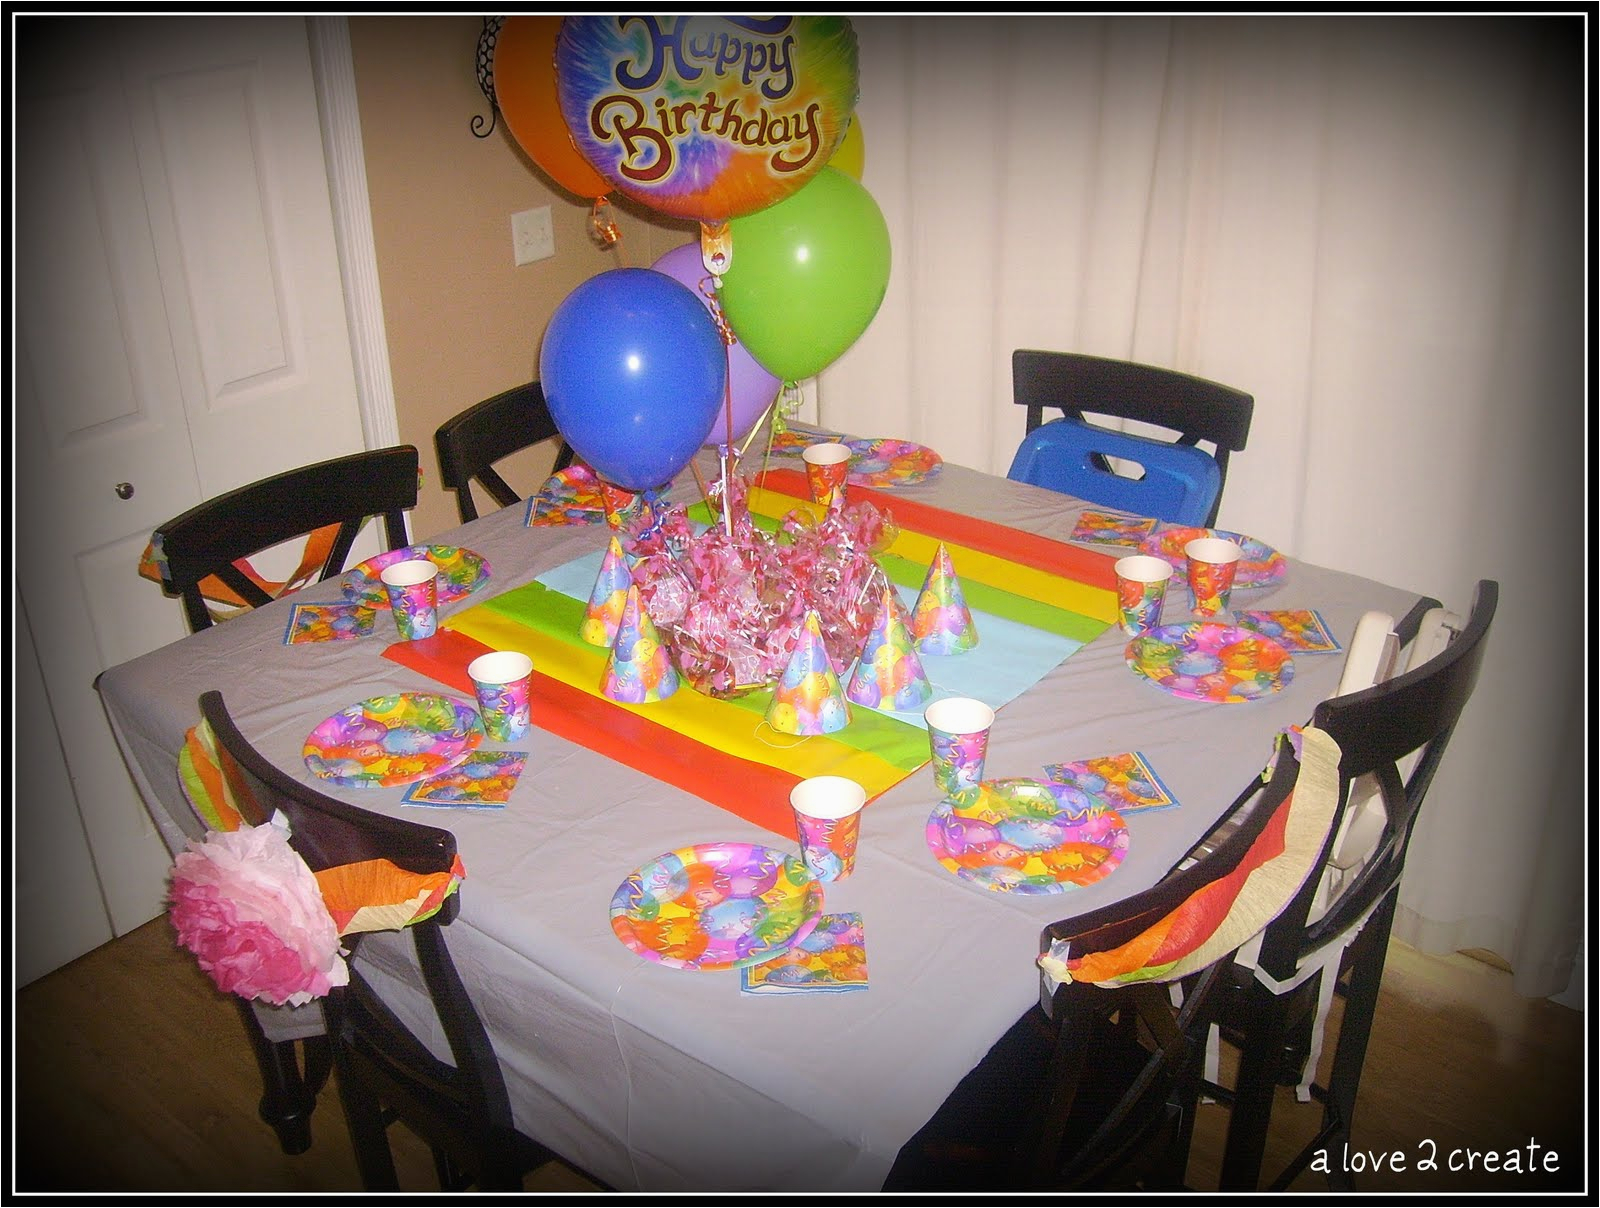 Care Bear Birthday Decorations A Love To Create